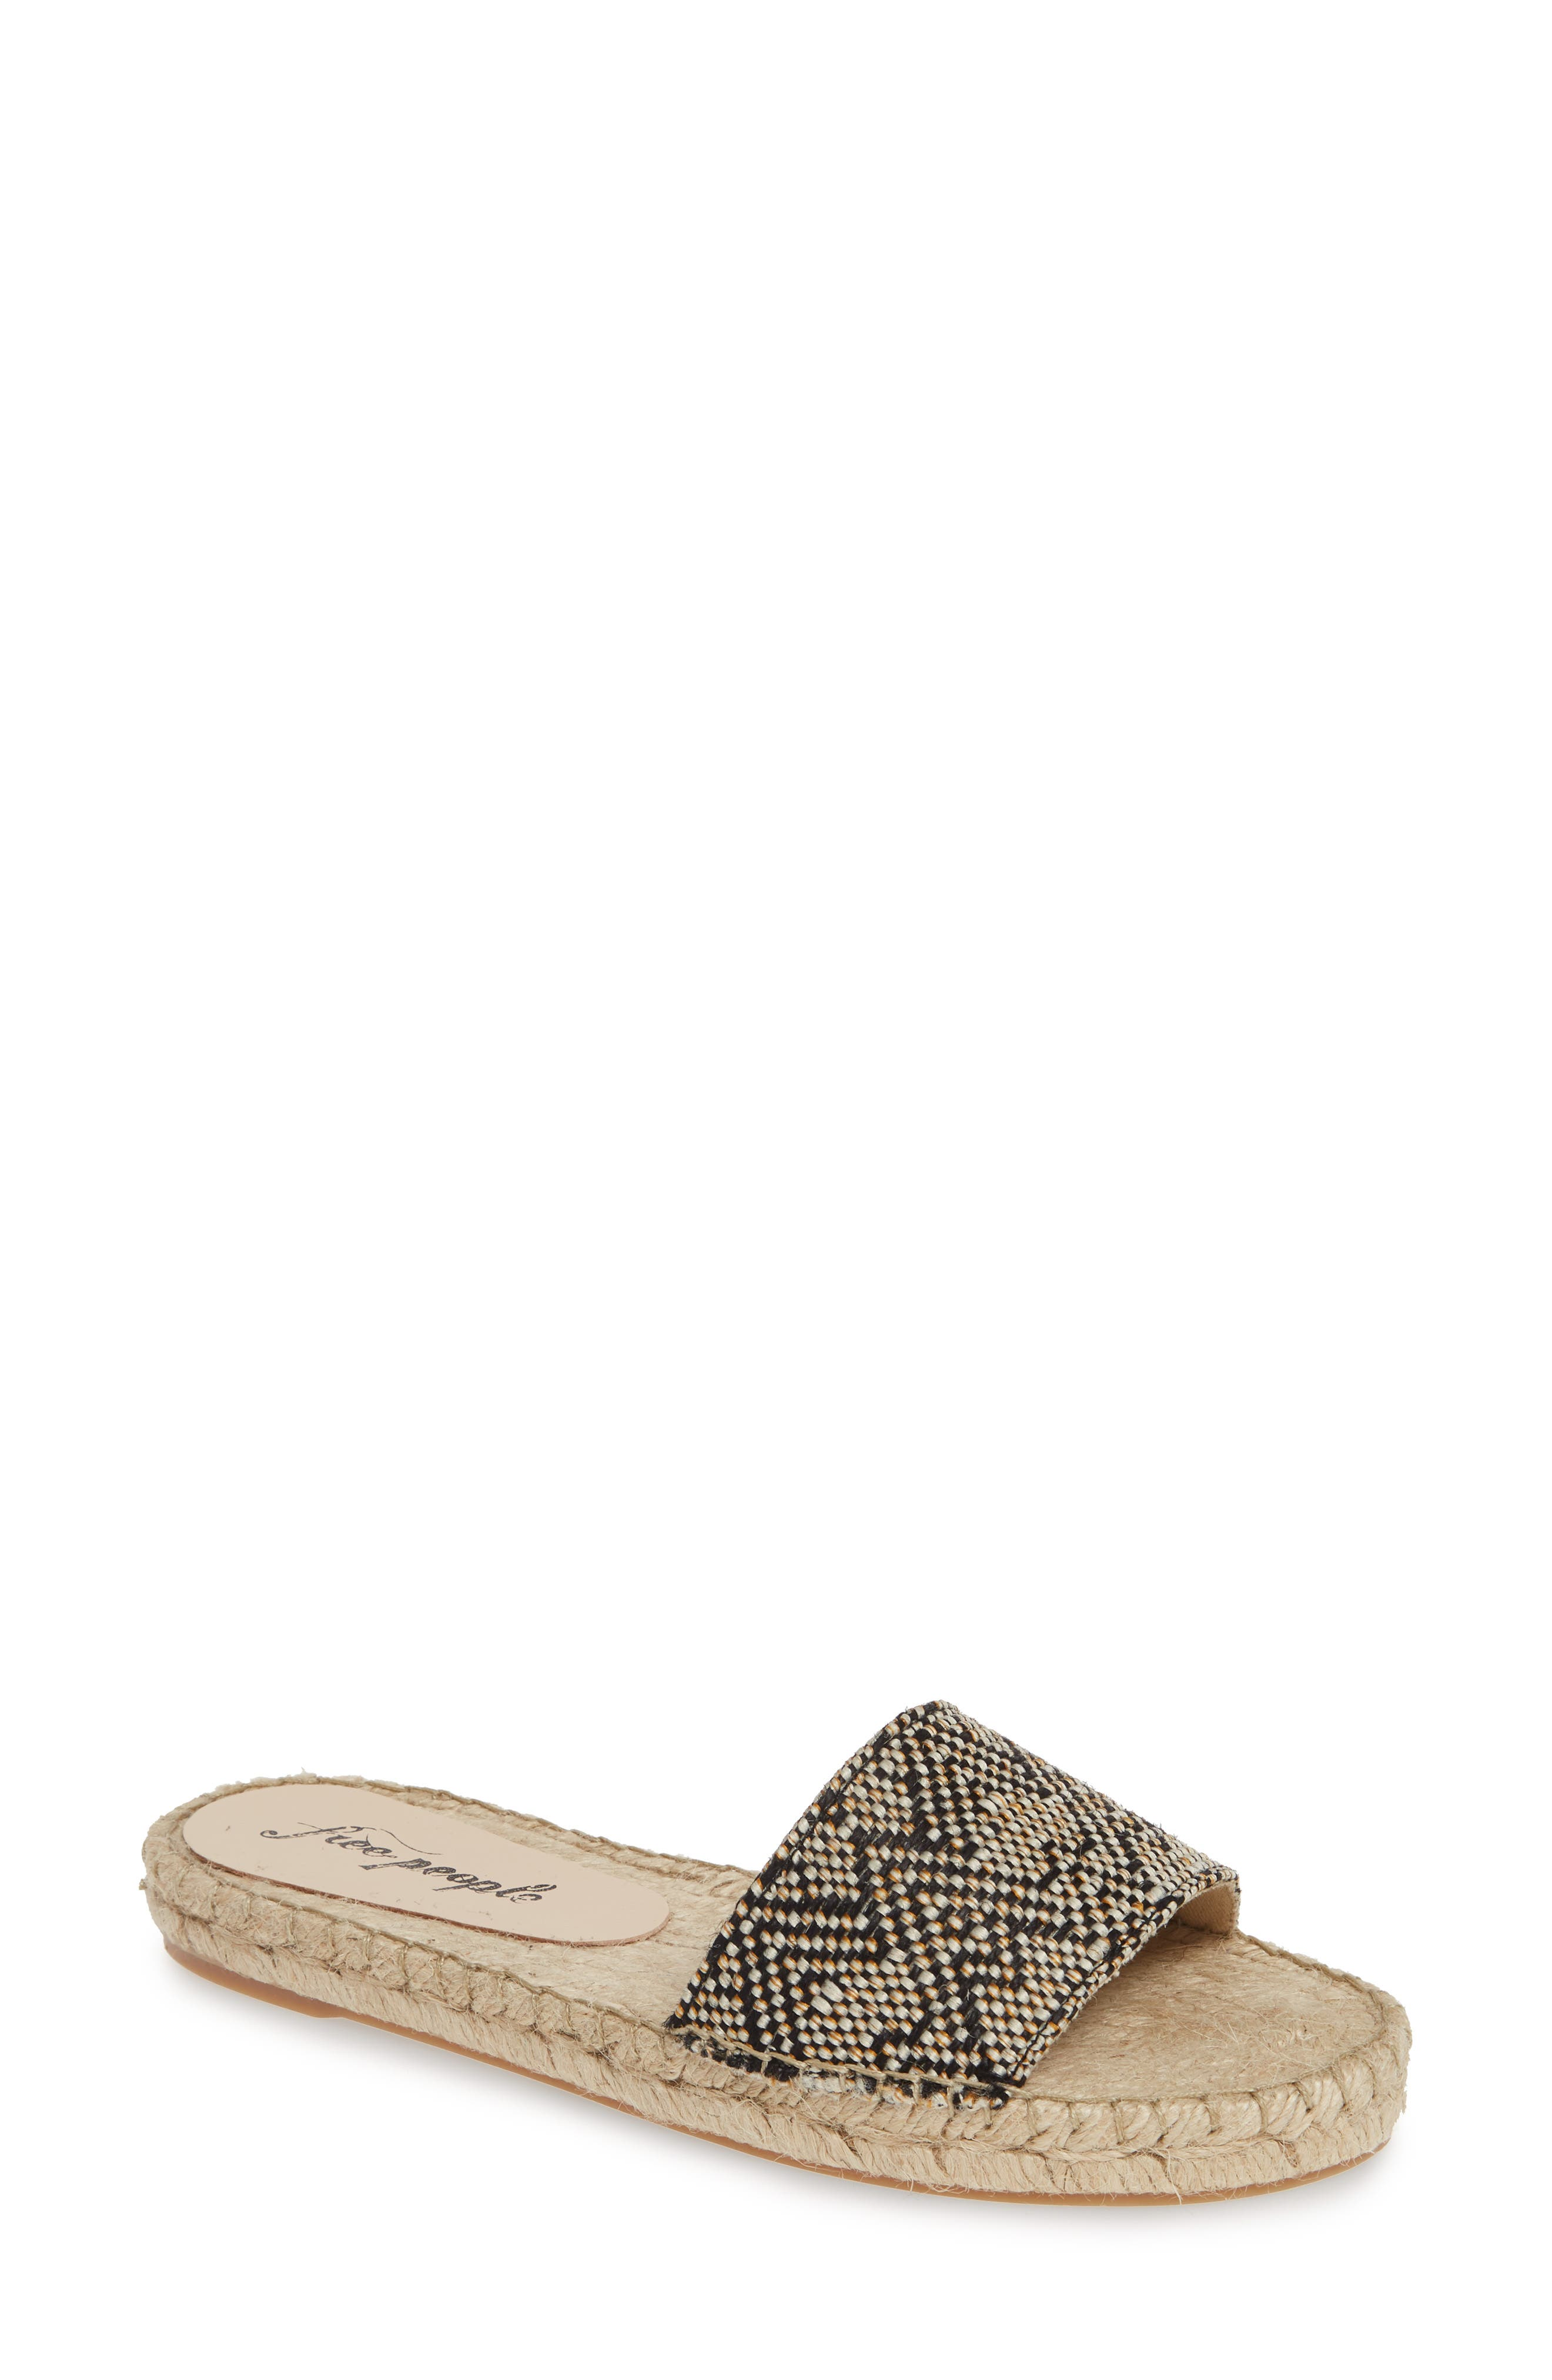 8fbc95fb900 Free People Espadrilles for Women